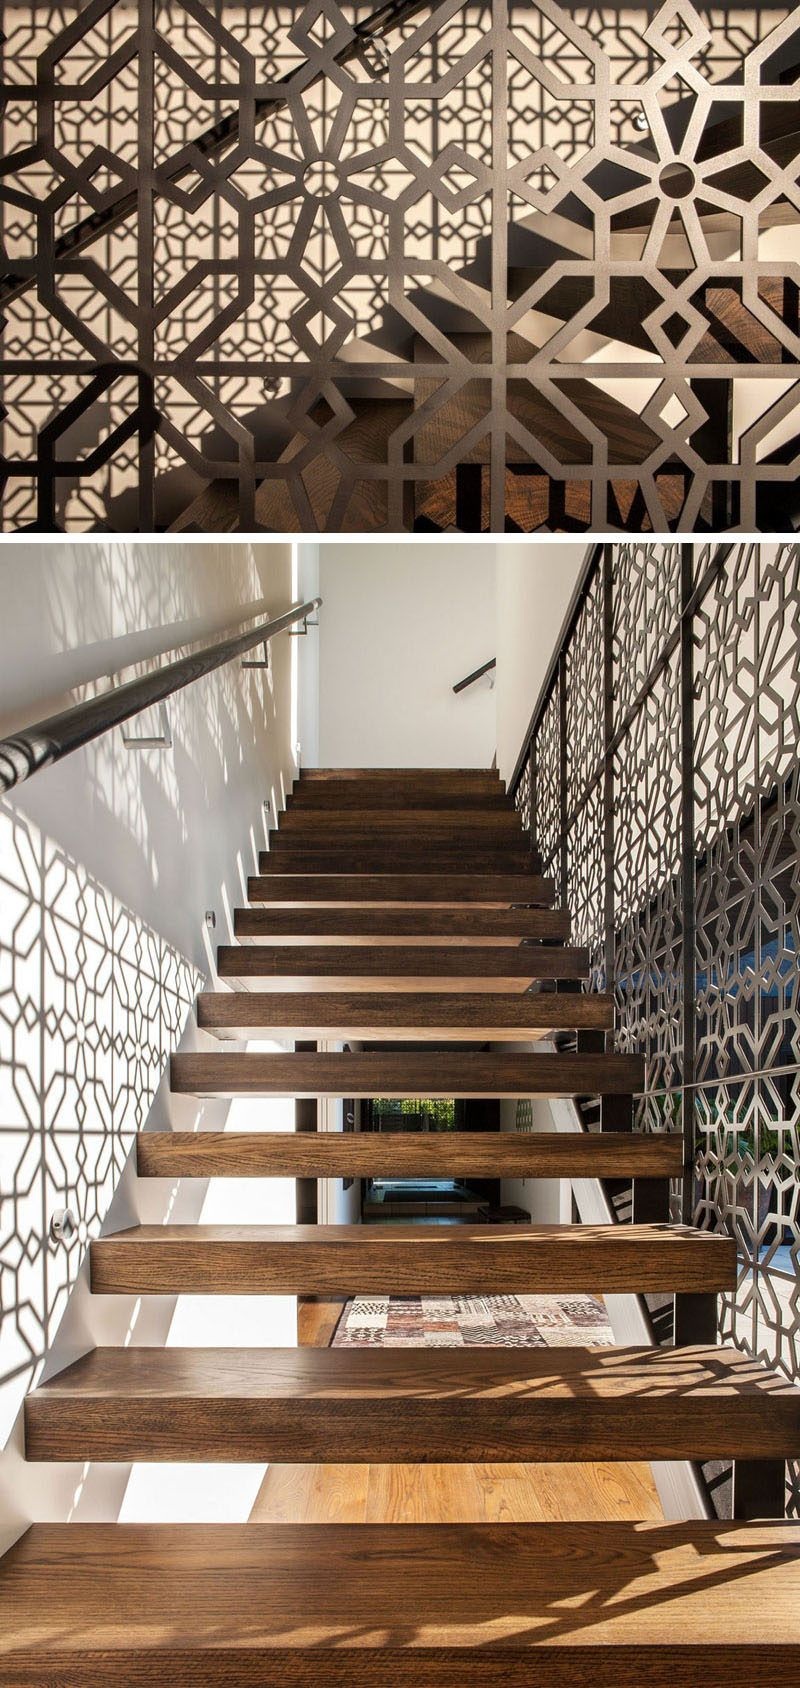 Best 11 Creative Stair Railings That Are A Focal Point In These Modern Houses Stair Railing 400 x 300